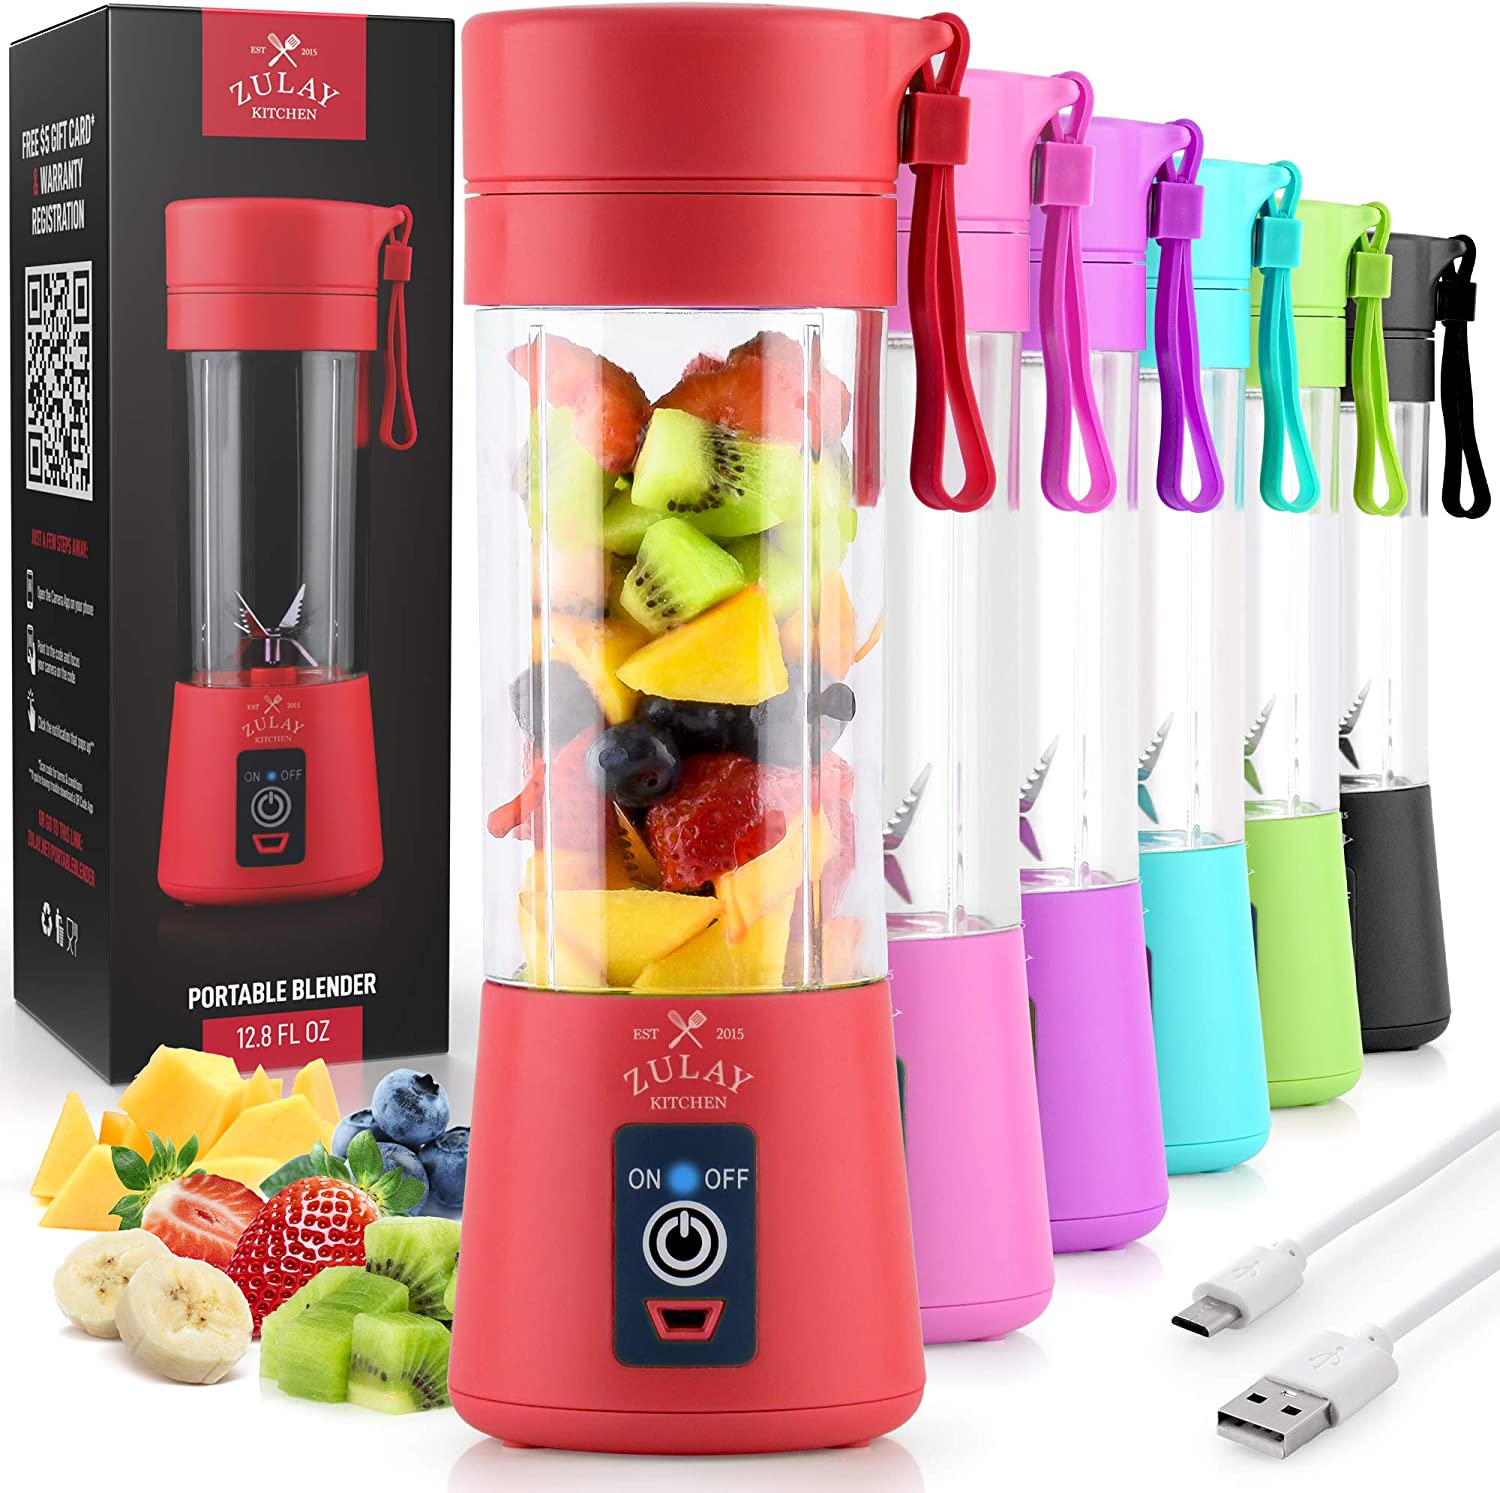 Zulay Portable Blender For Shakes And Smoothies - USB Rechargeable Portable Smoothie Blender Small For Travel - 13oz Capacity Personal Mini Blender Portable - Red